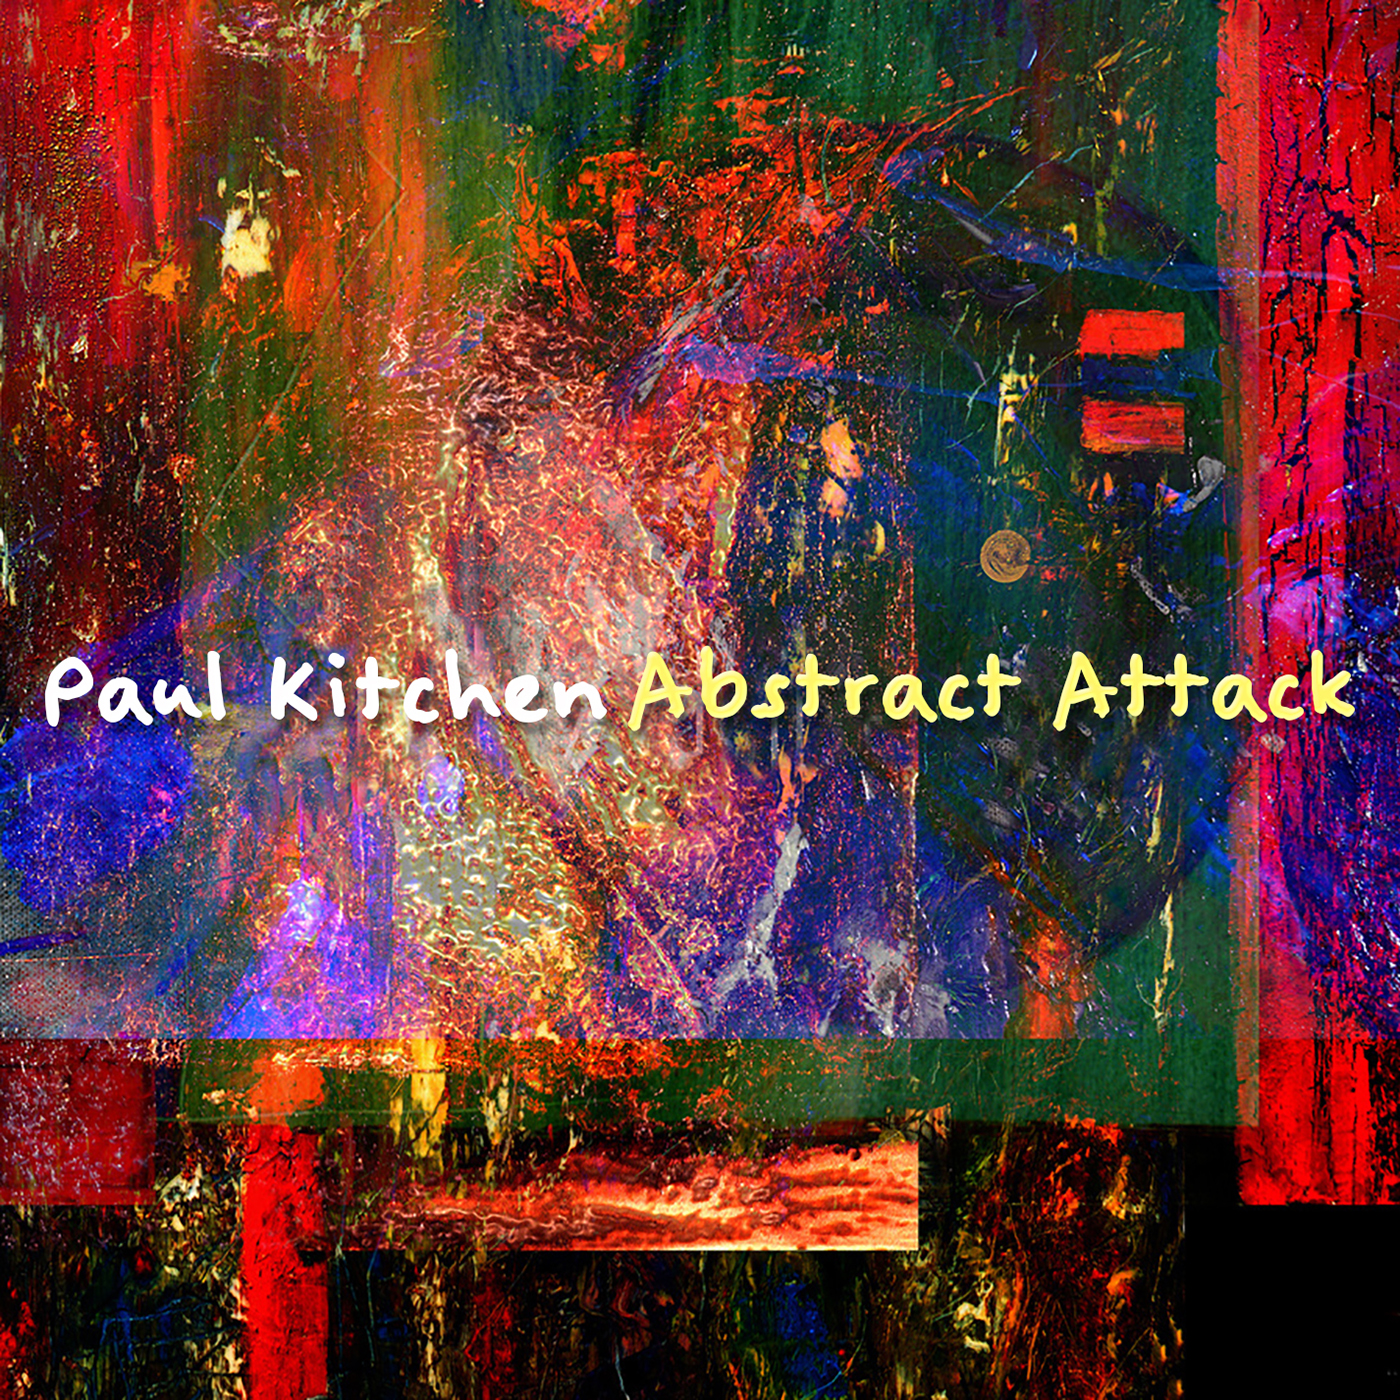 Abstract Attack